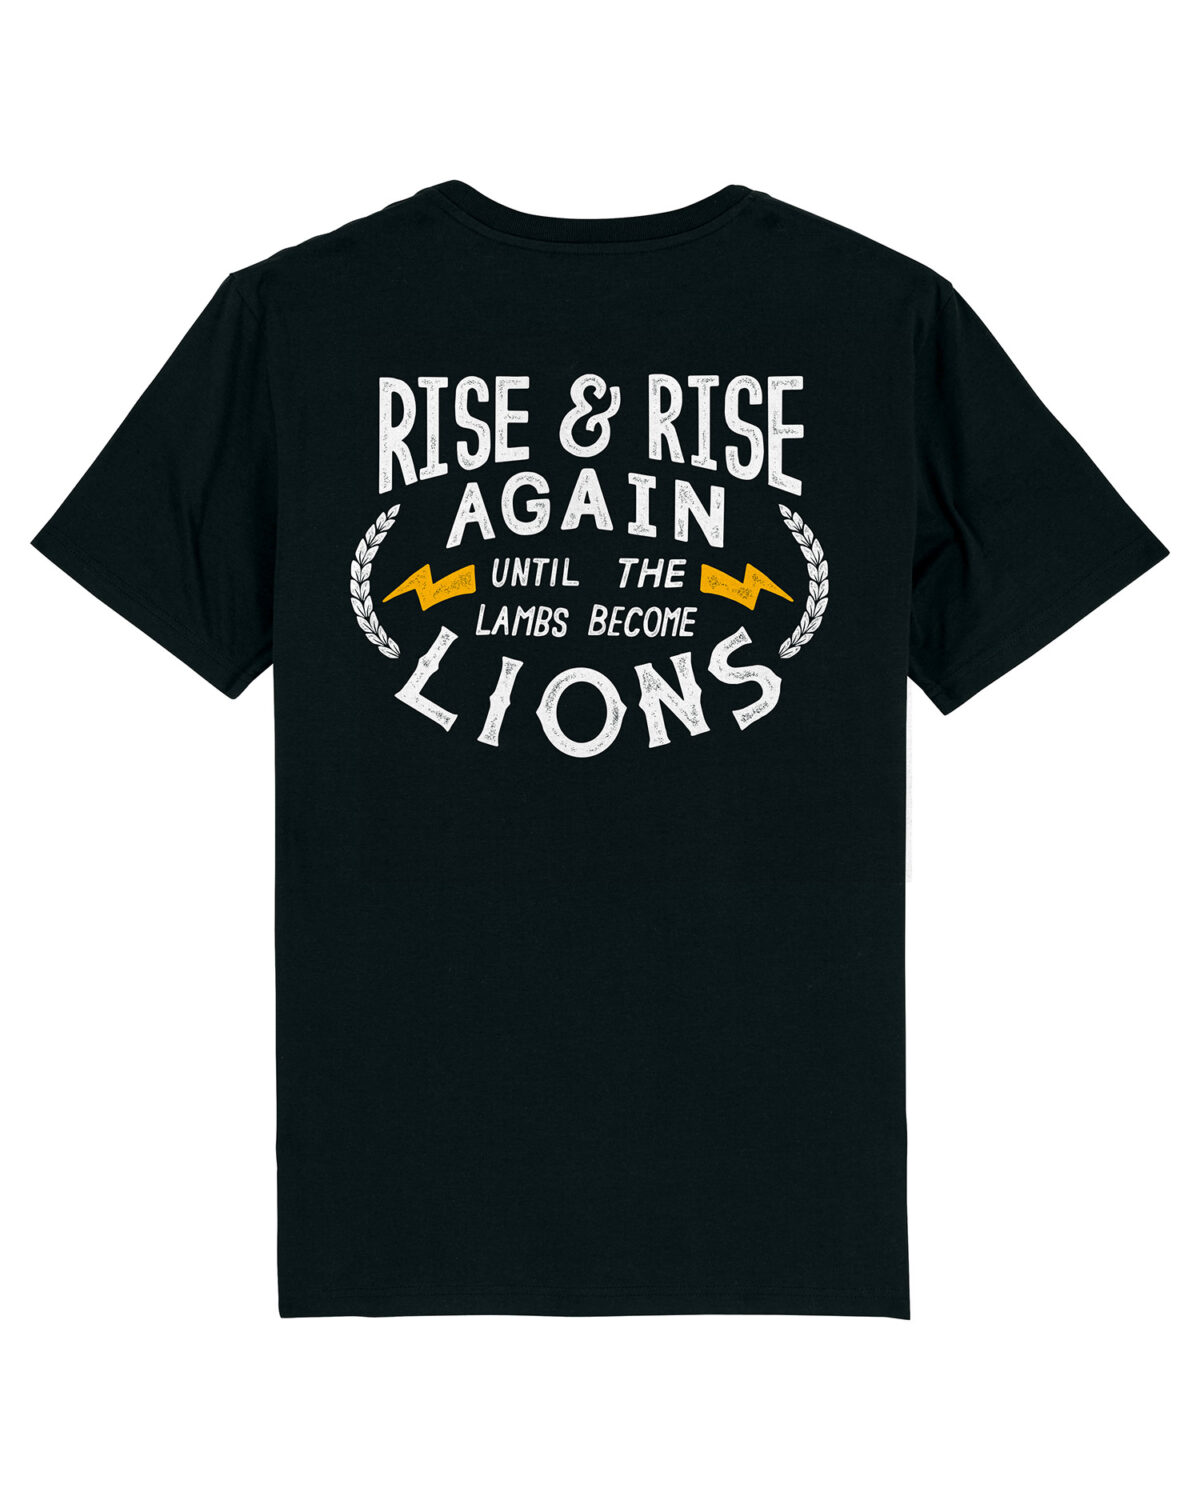 Camiseta Rise & Rise Again Black Dissident Co